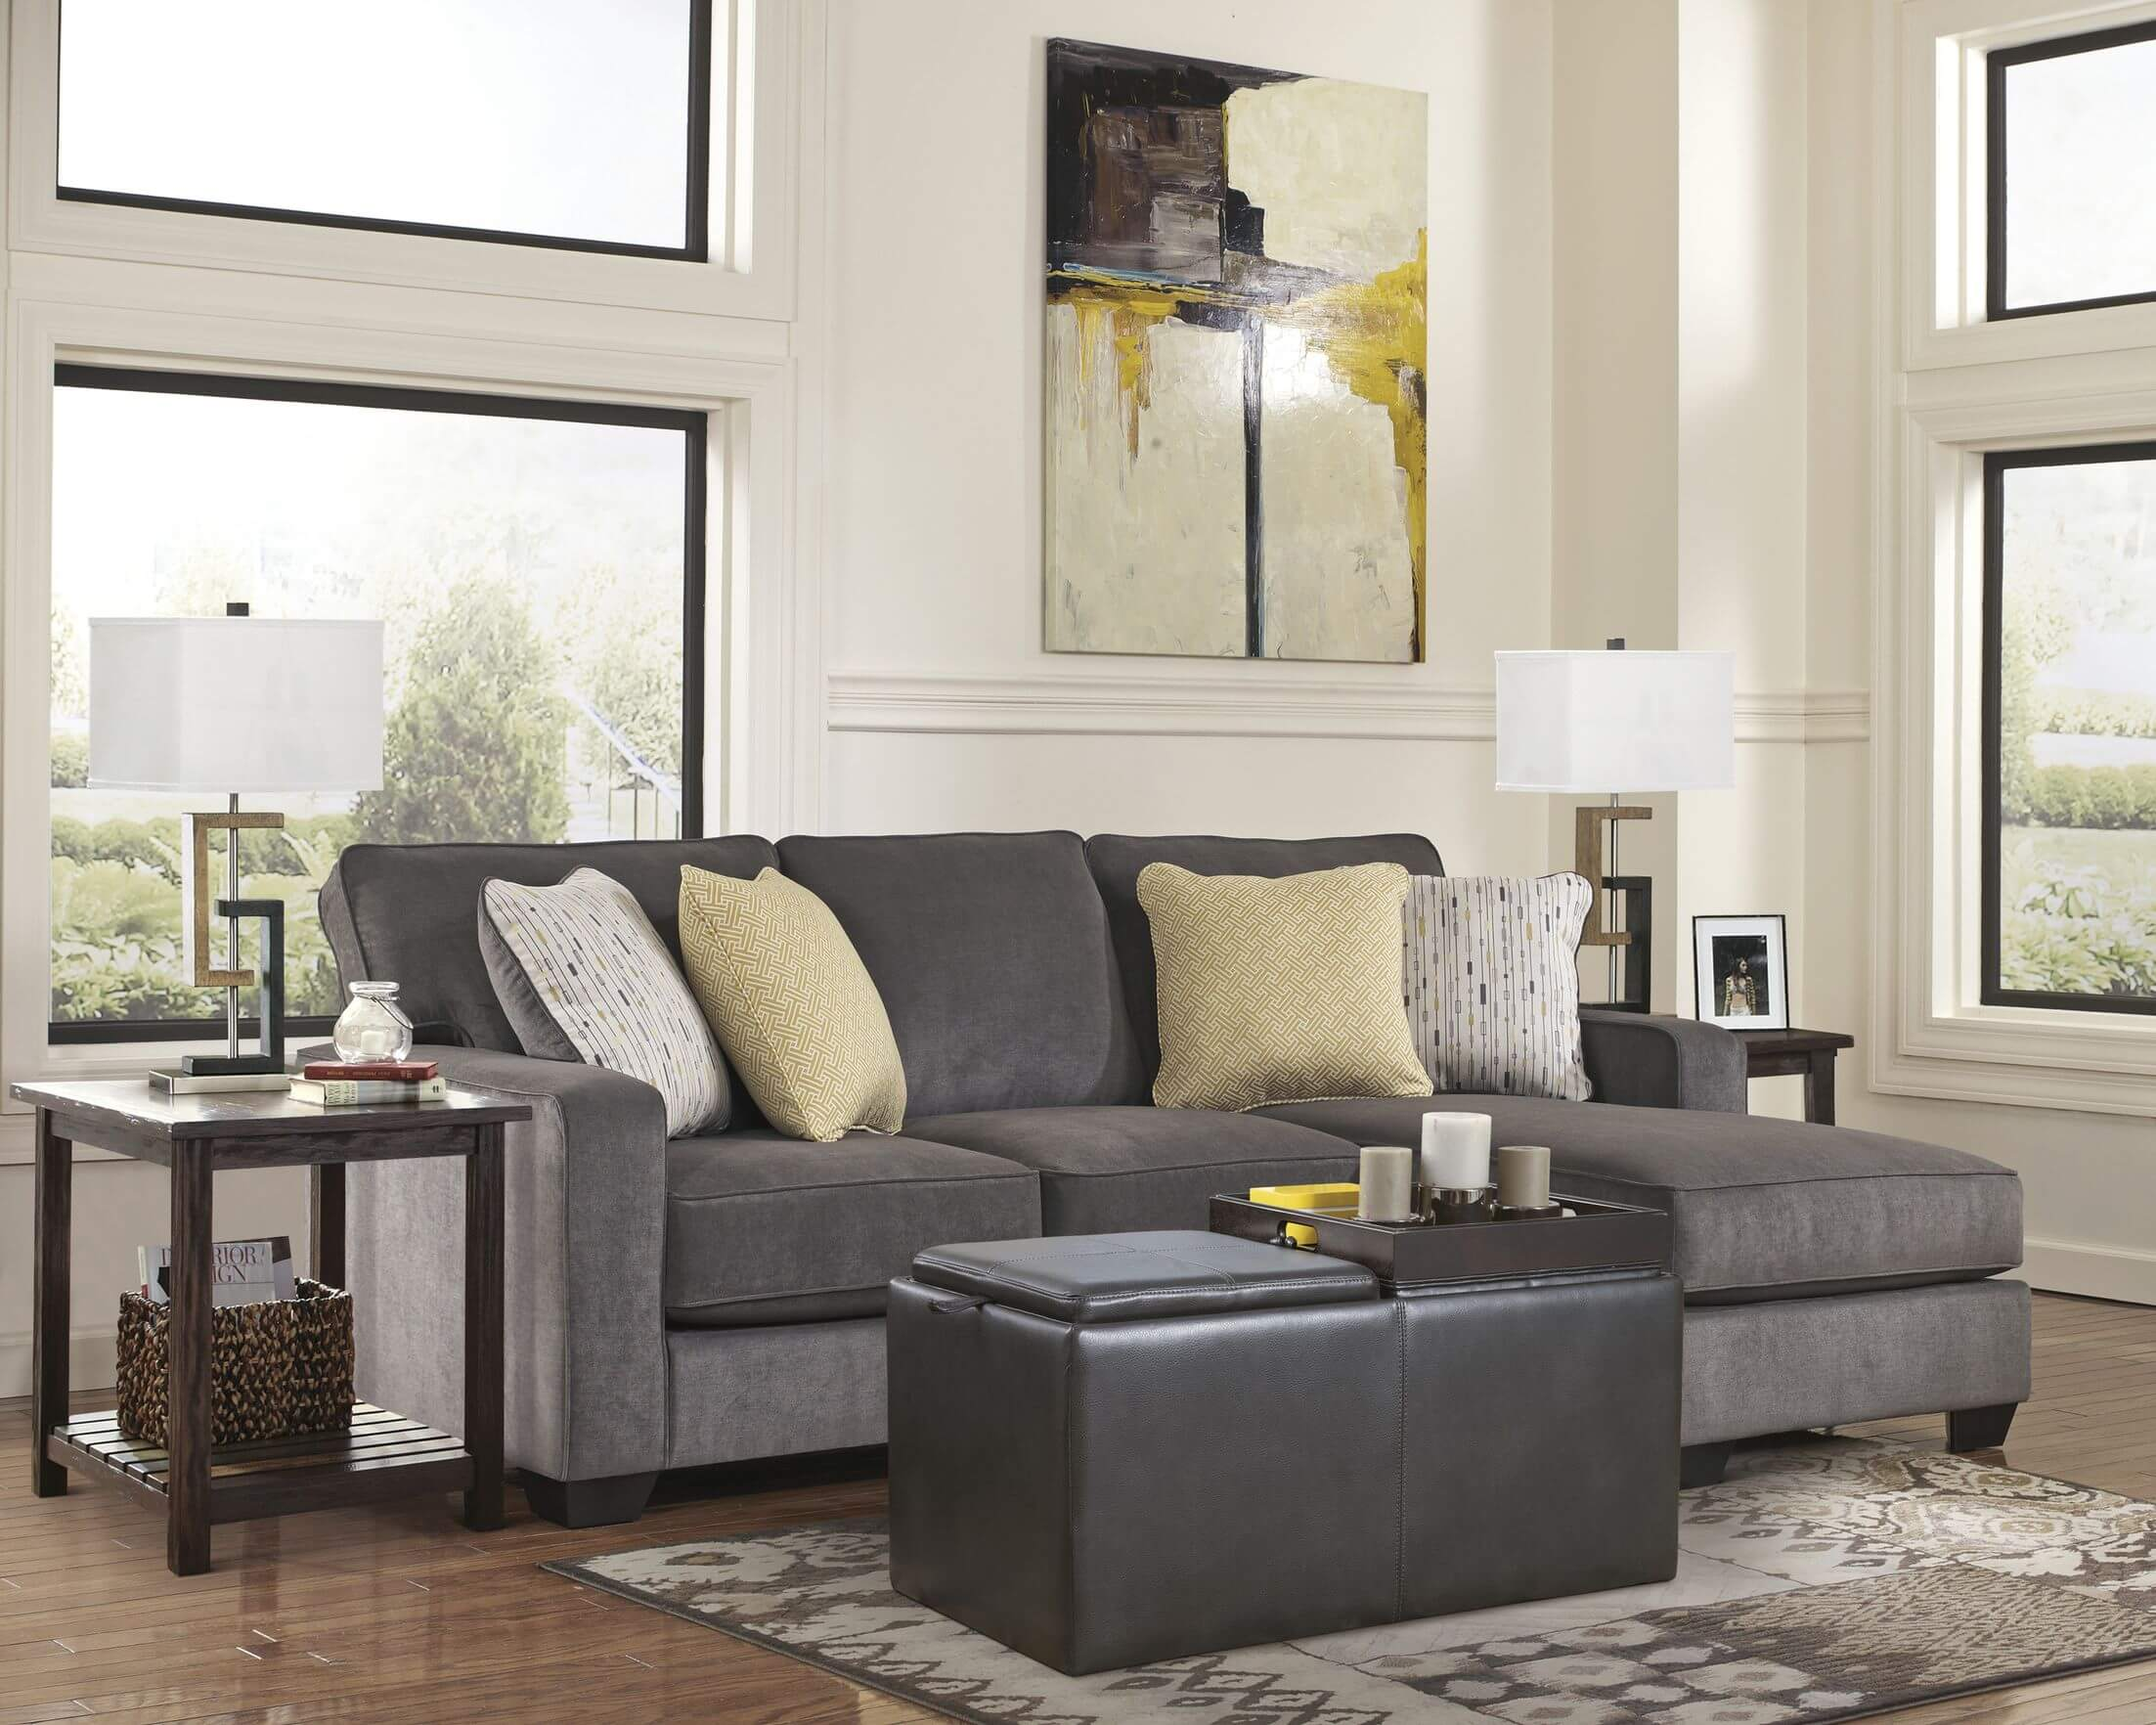 Contemporary Living Rooms With Sectional Sofas Pictures - End table for sectional sofa